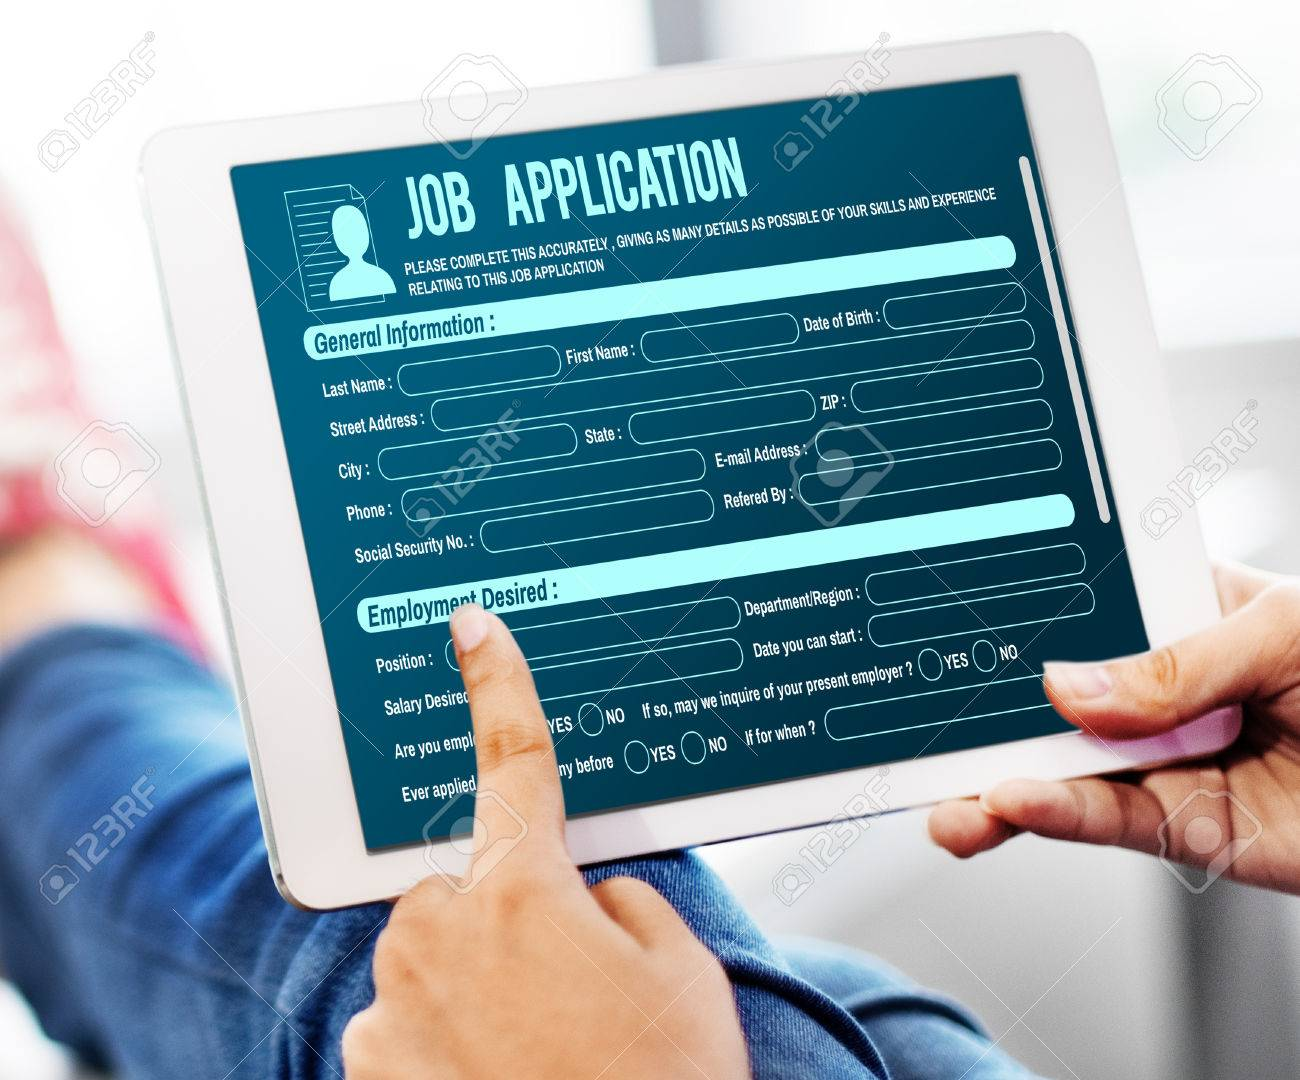 online web job application form concept stock photo picture and